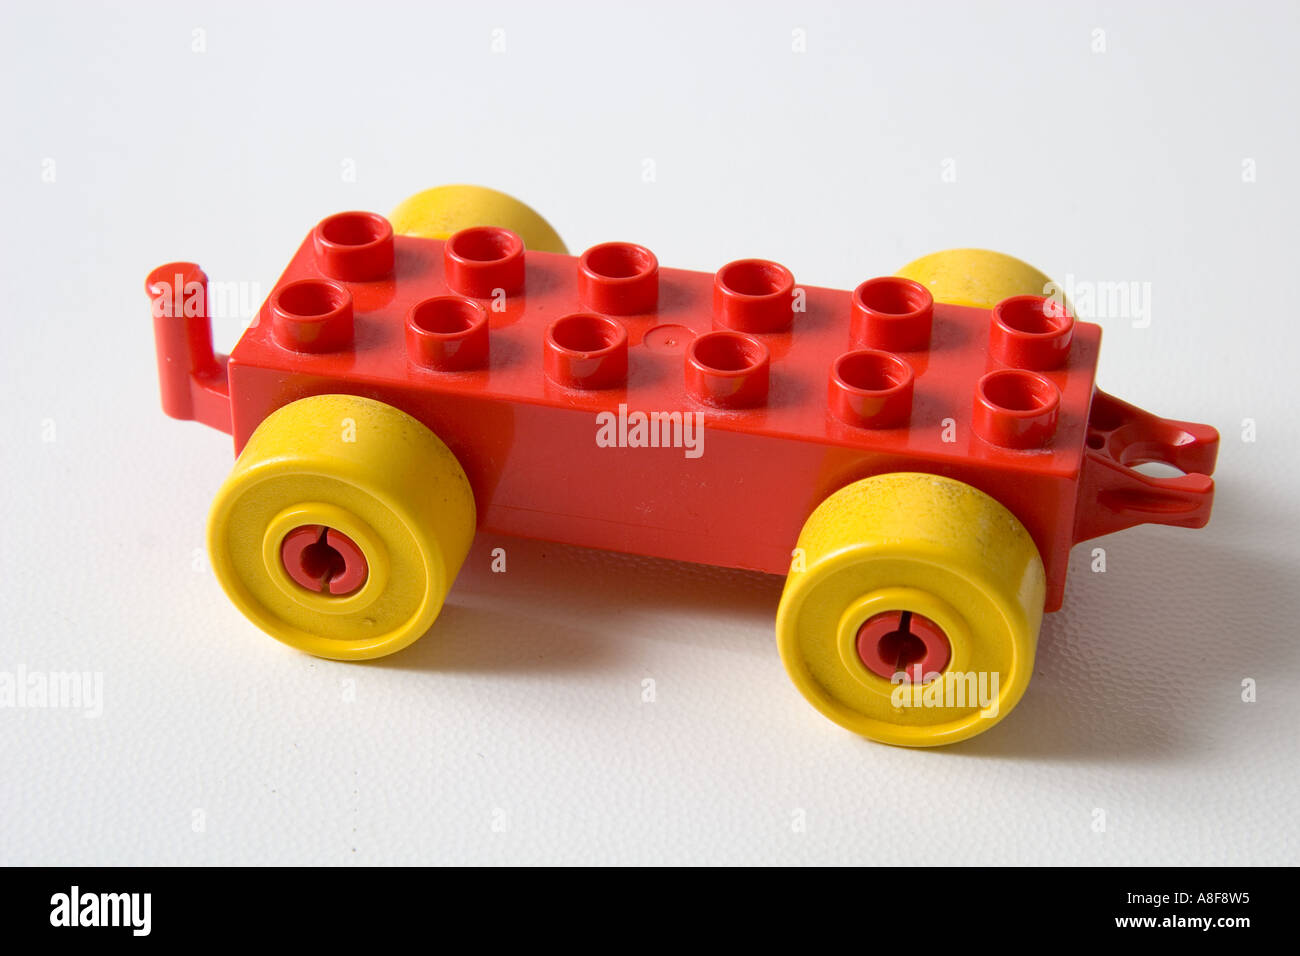 stock photo toy lego toy car wheels yellow red close up white background kids play